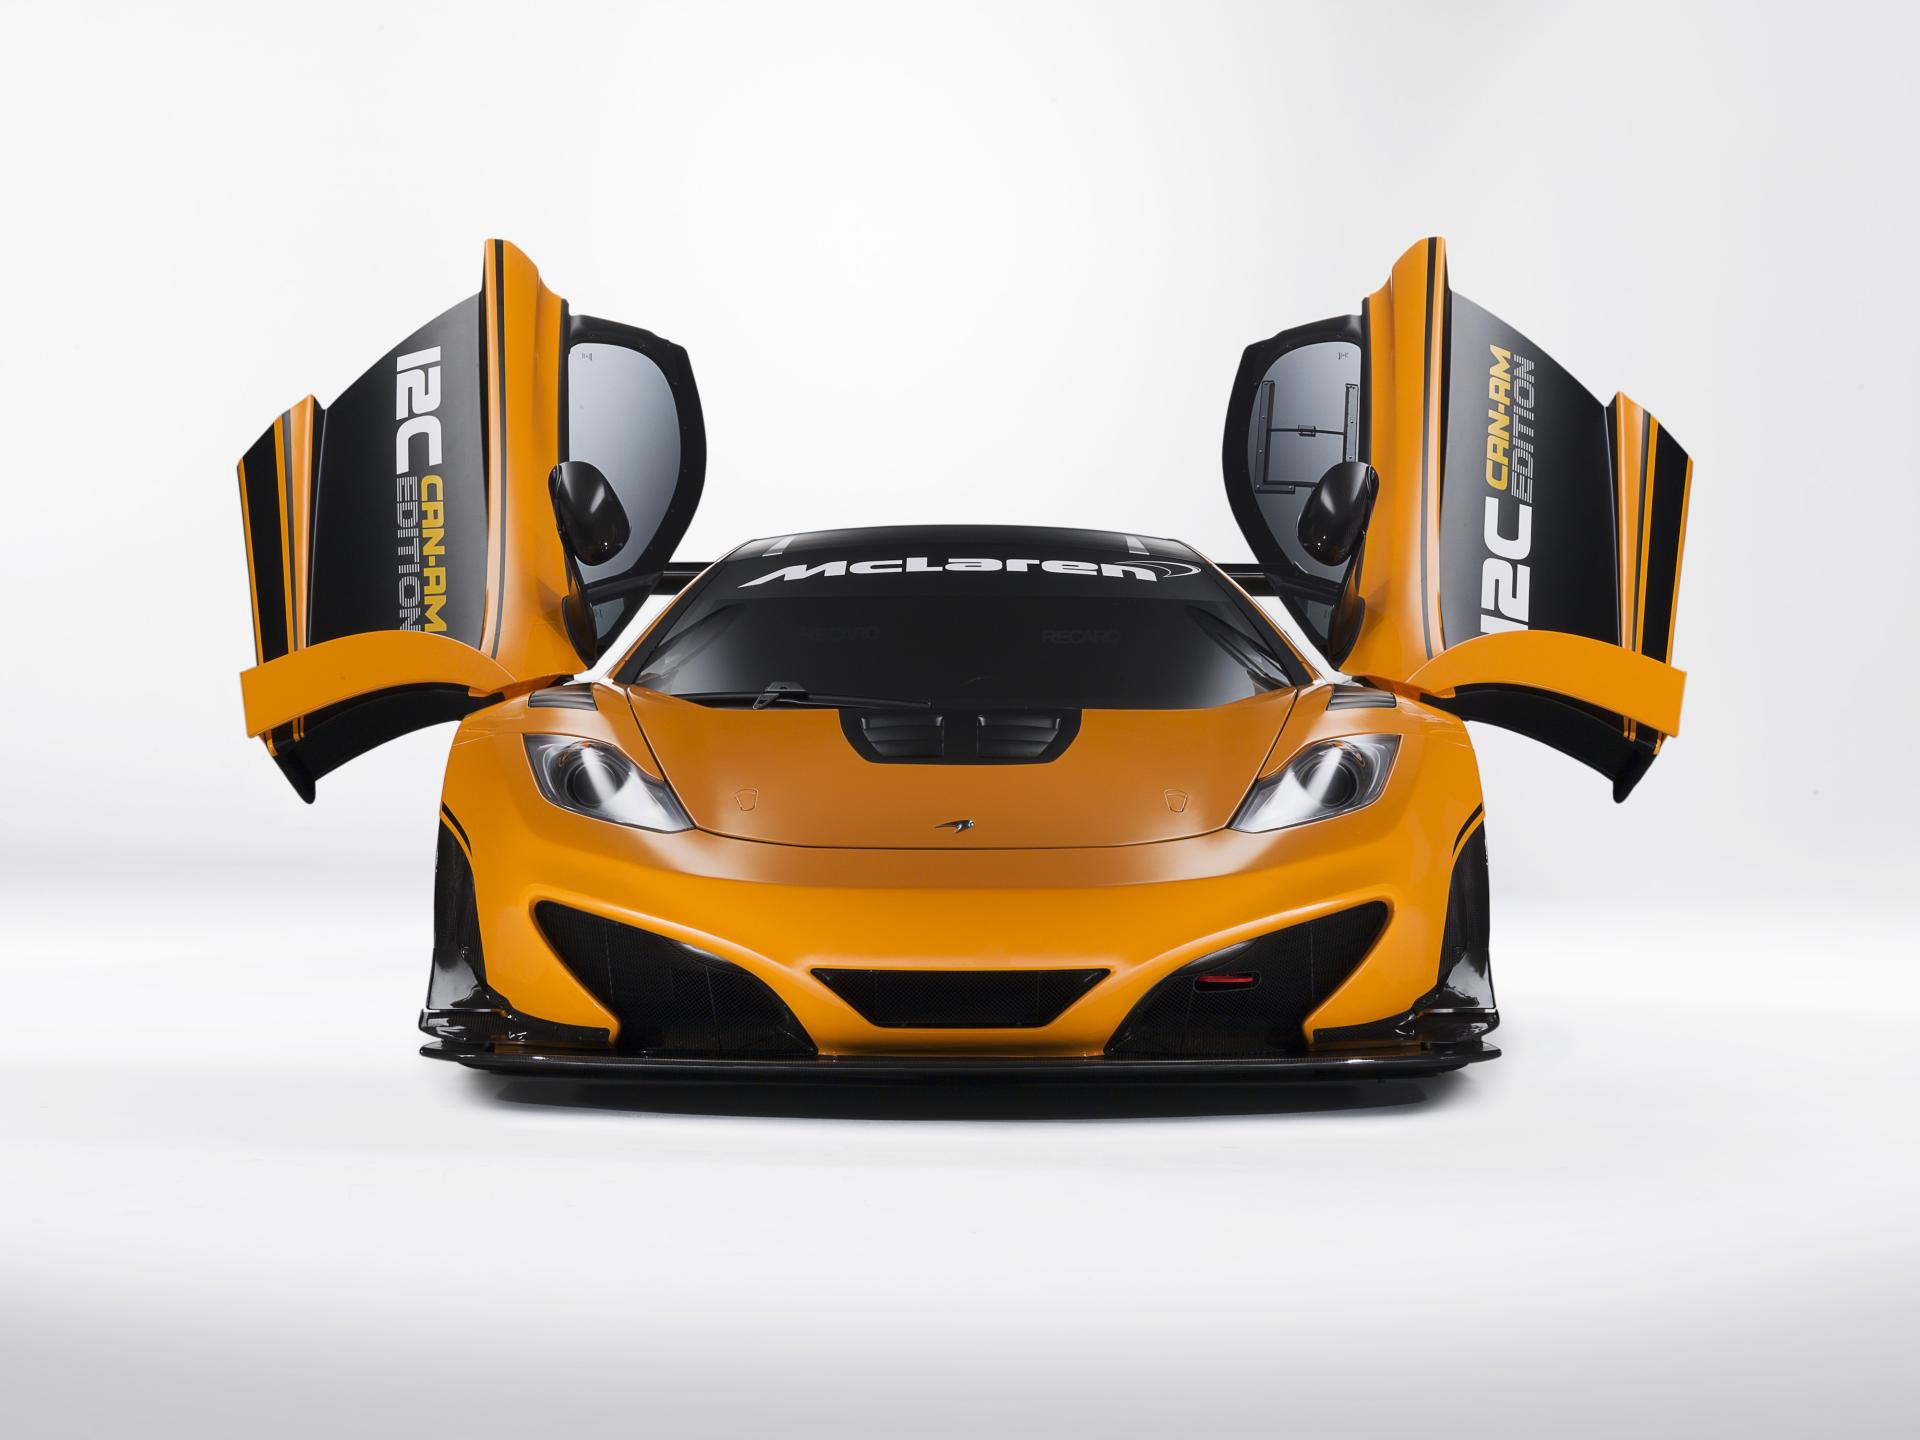 mclaren mp4 12c gt3 special edition. click here to view the original image of 800x600px mclaren mp4 12c gt3 special edition